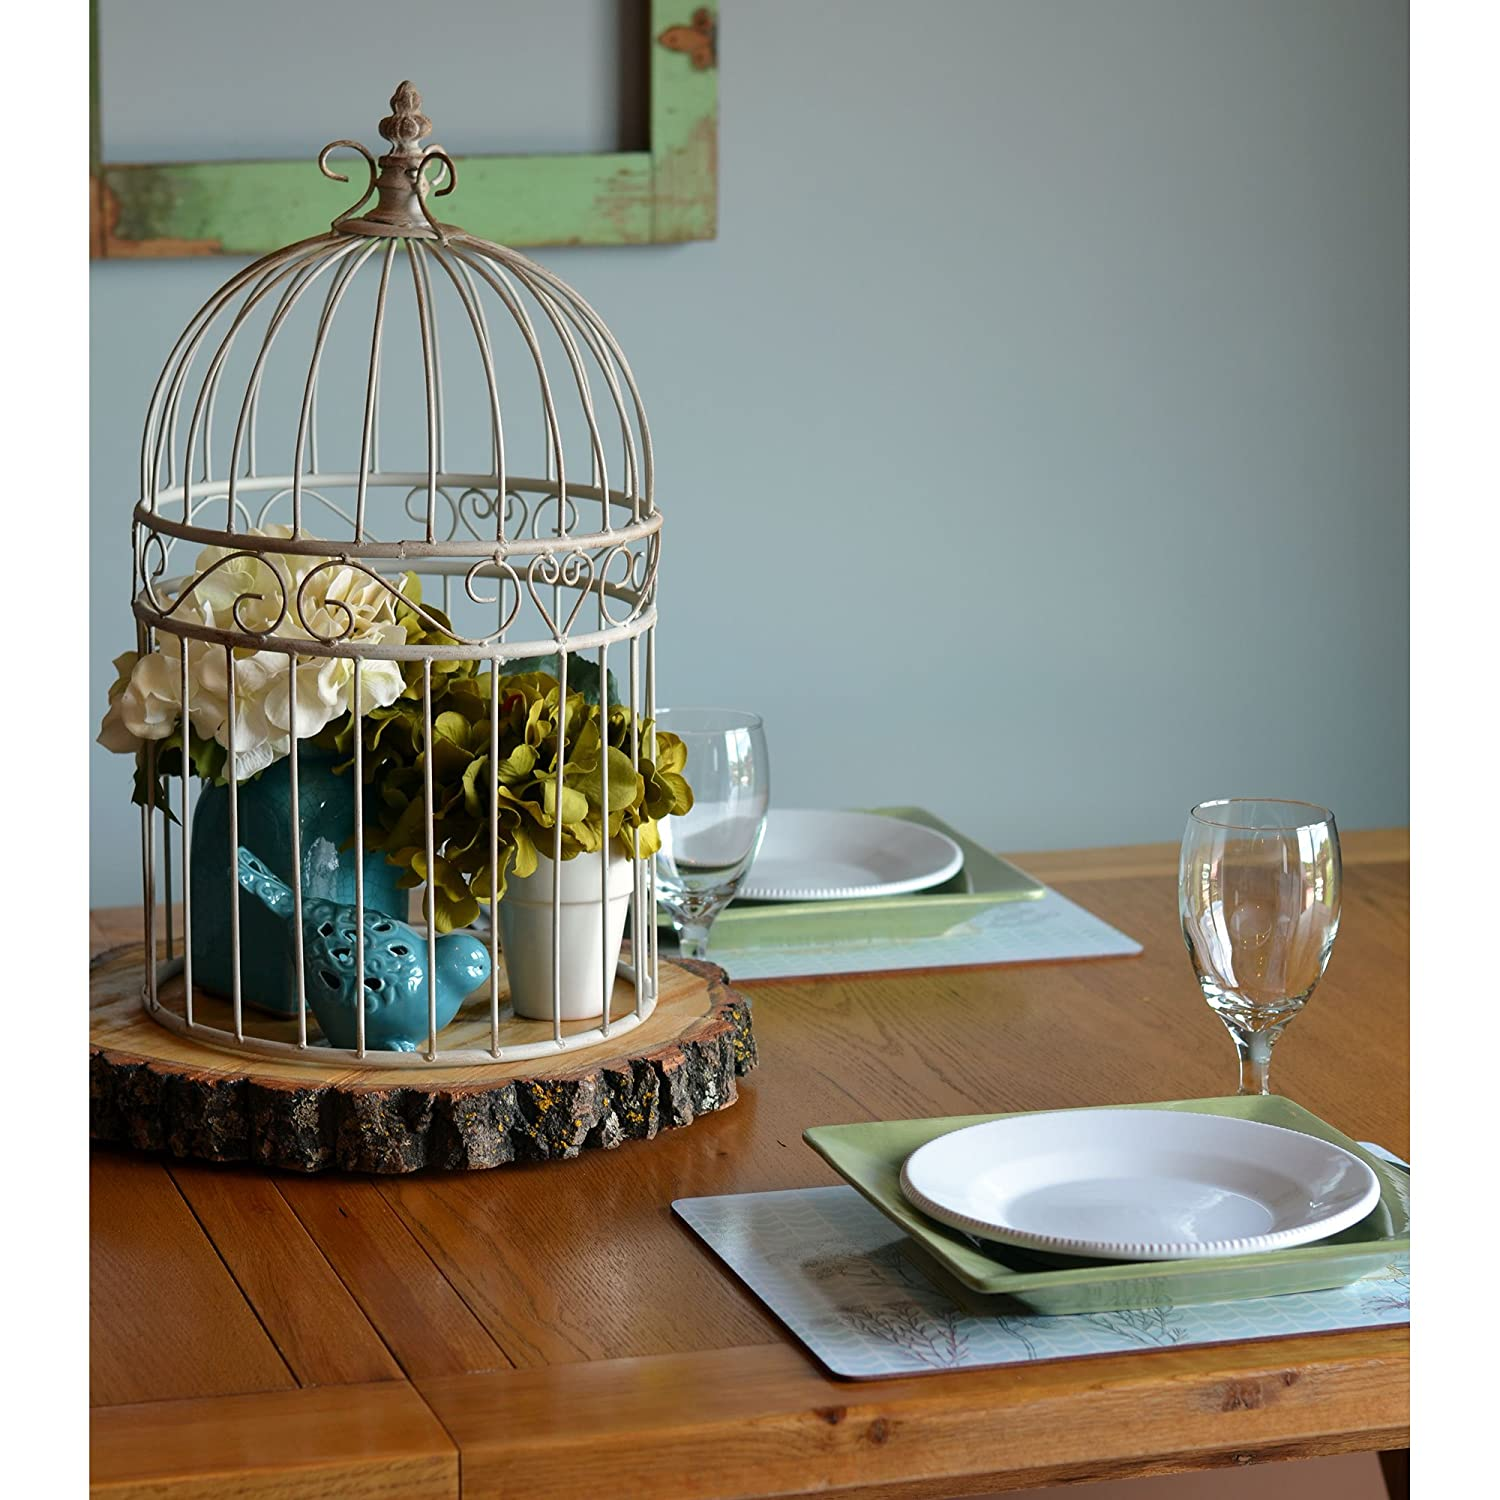 Amazon.com : The Farmers Market Decorative Bird Cage Plant Stands ...